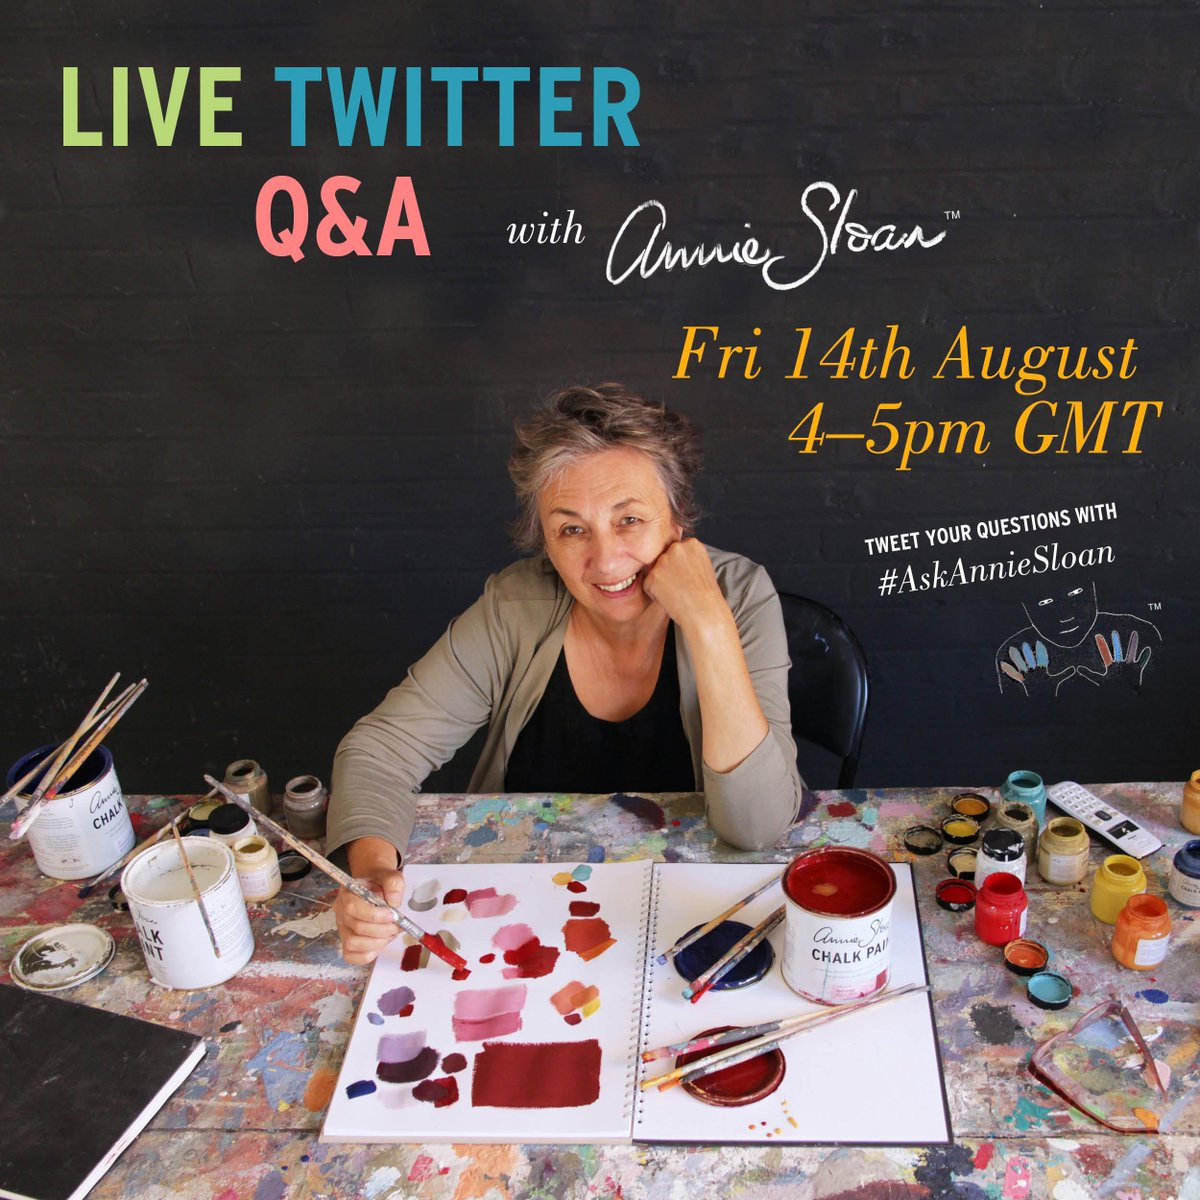 Just half an hour to go! Start tweeting your questions with the hashtag #AskAnnieSloan http://t.co/ufmpV0JimP